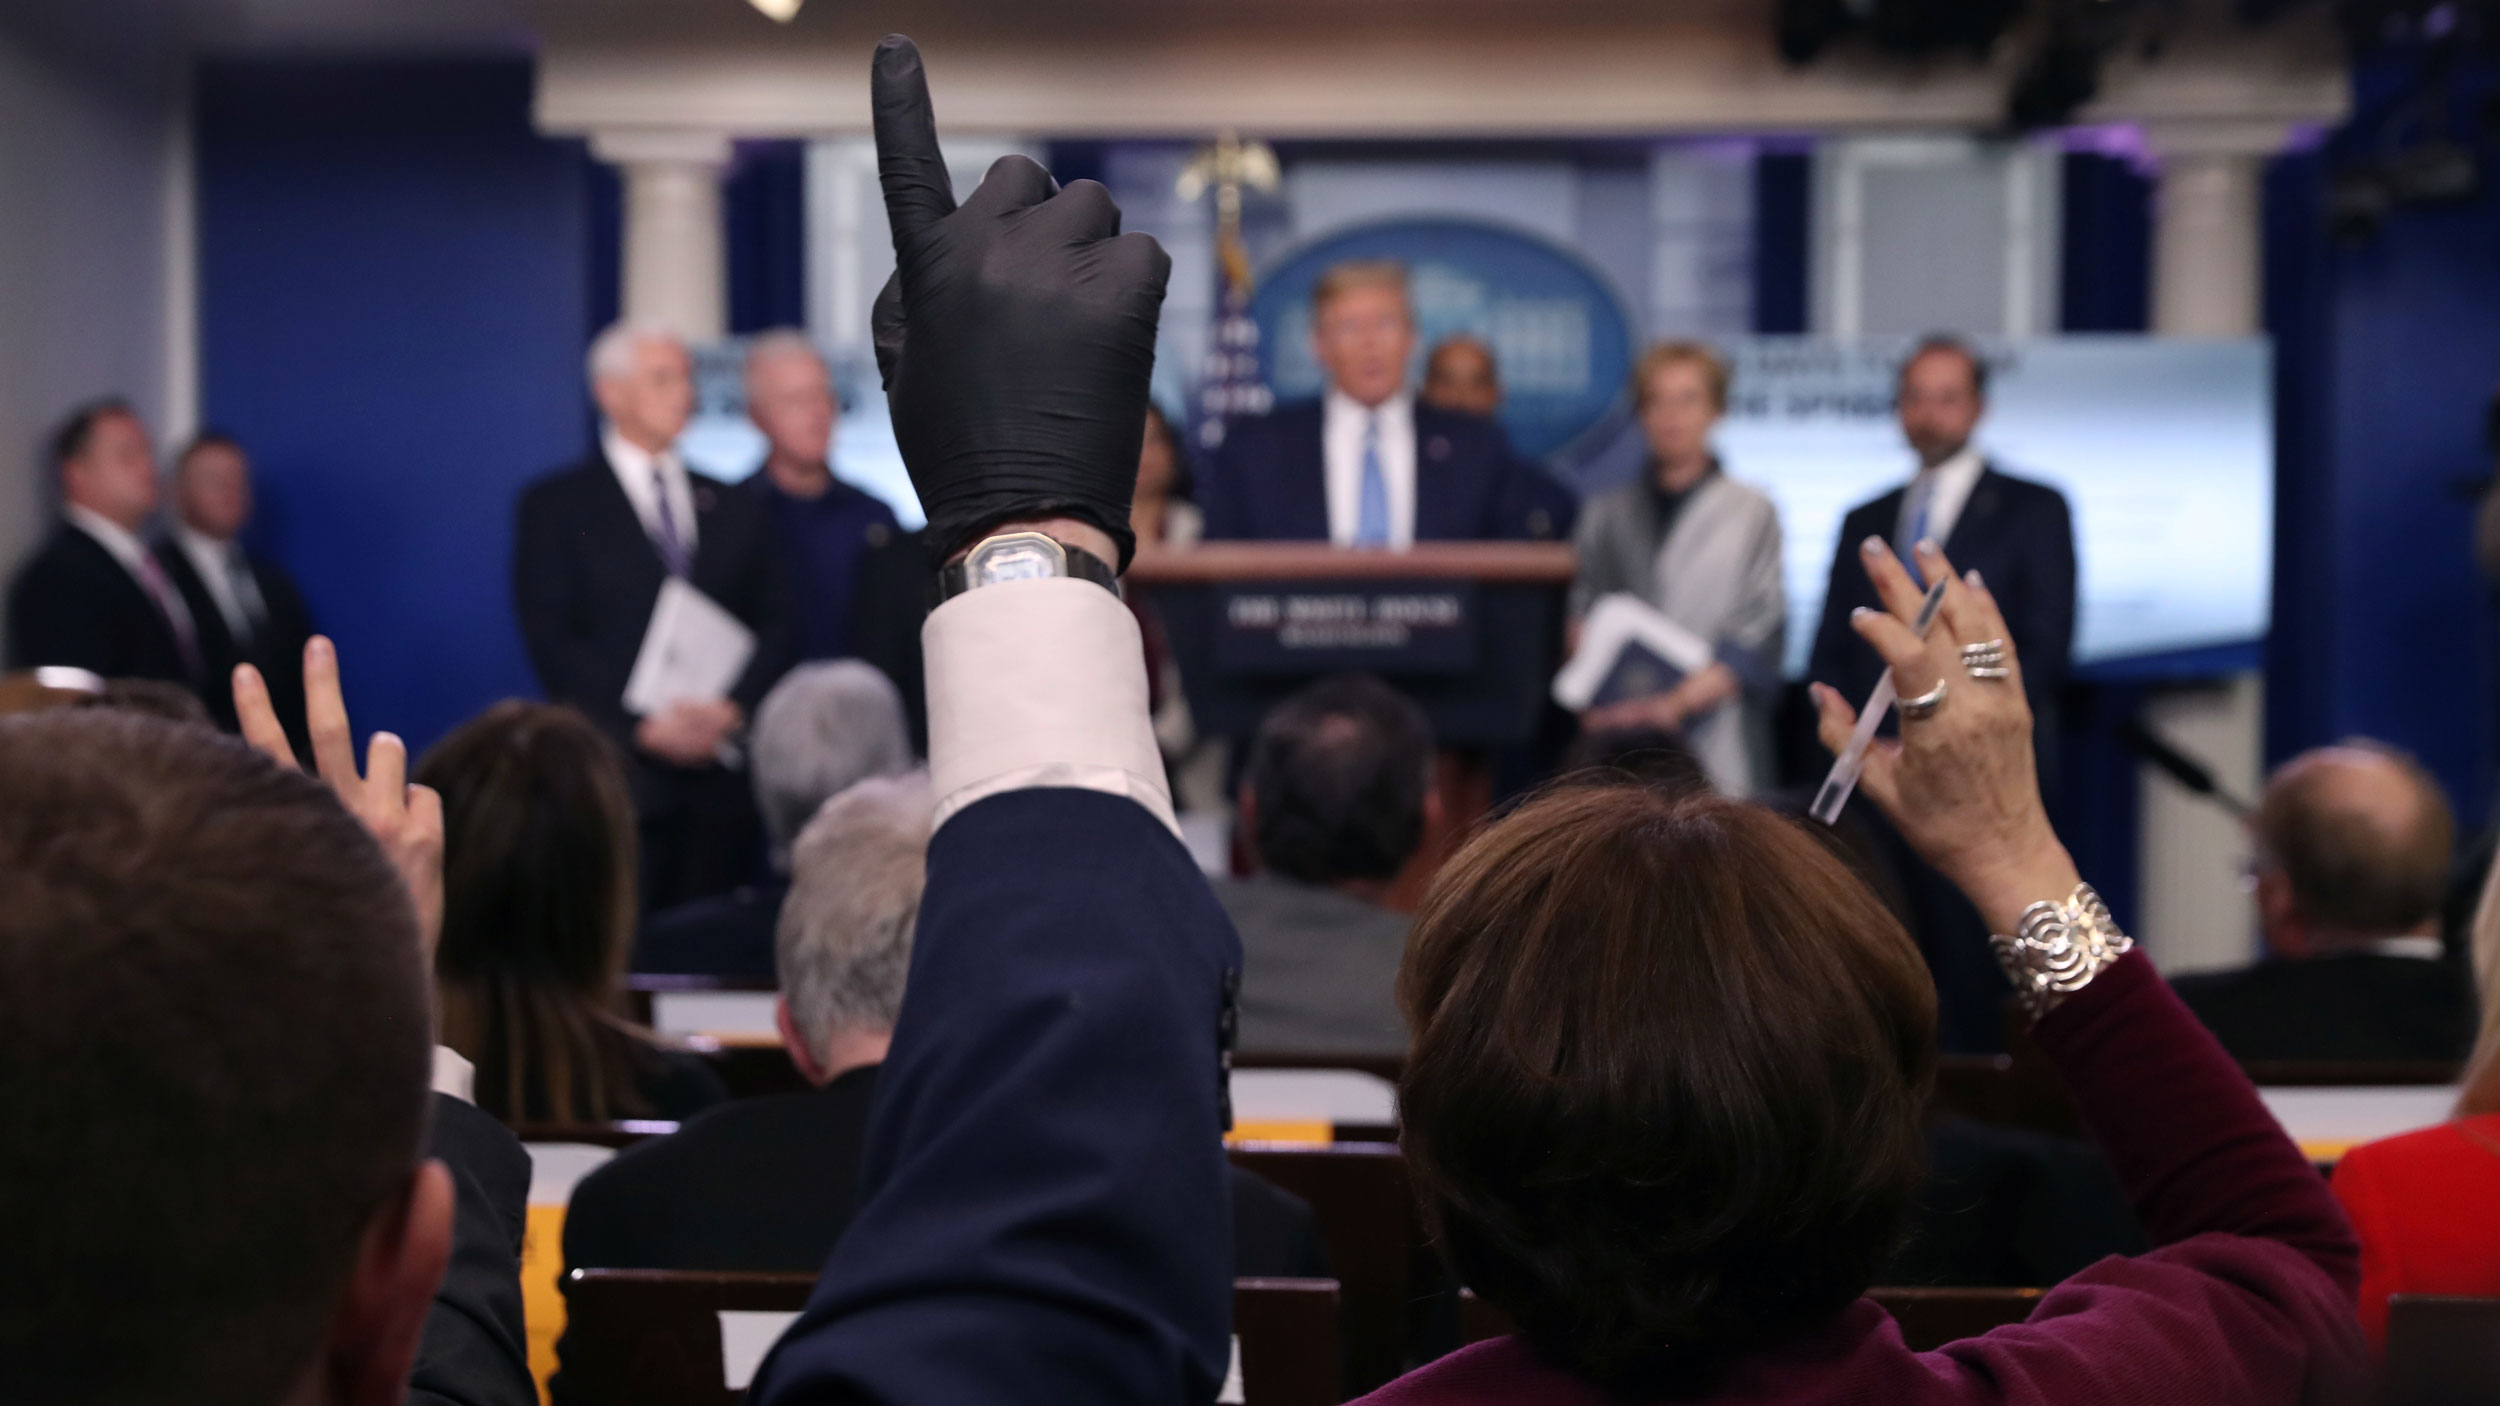 A group of reporters are shown sitting in chairs with one person holding up their hand which is covered by a dark colored latex glove.